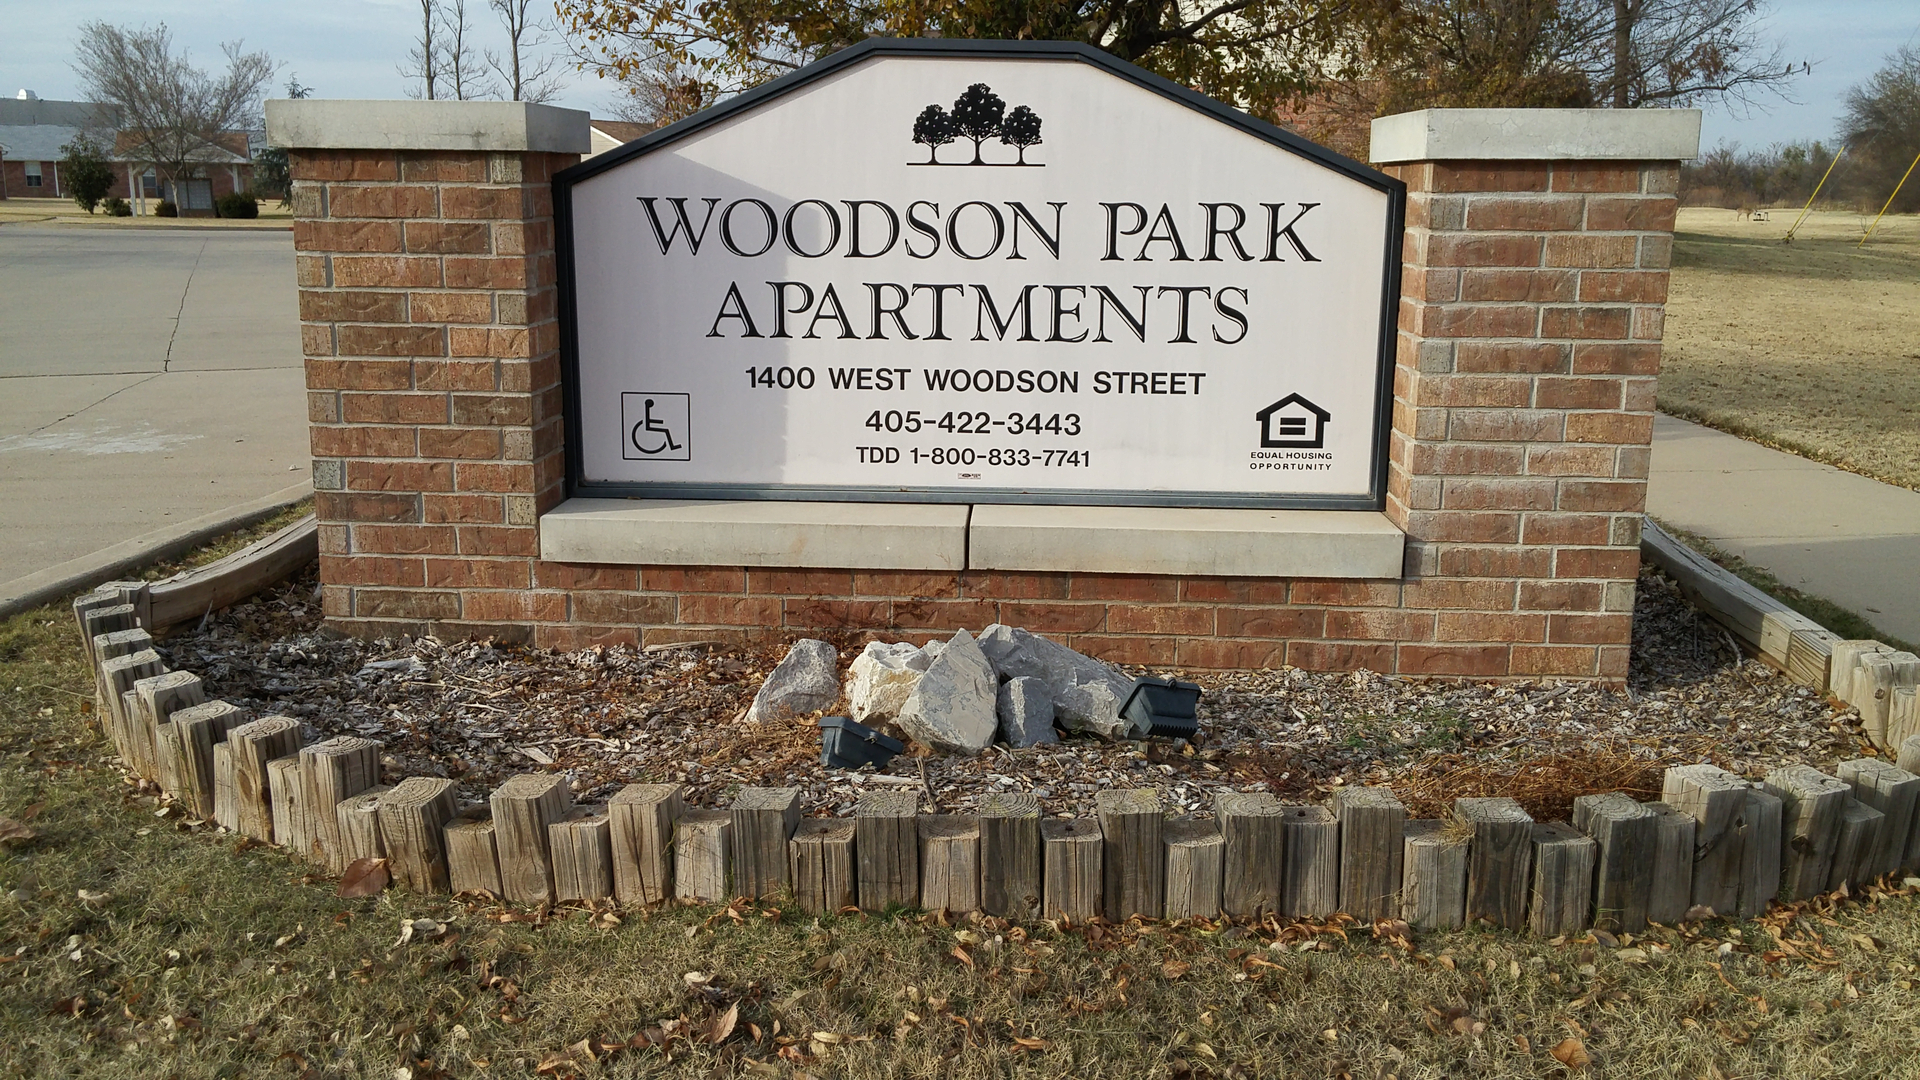 Woodson Park Apartments